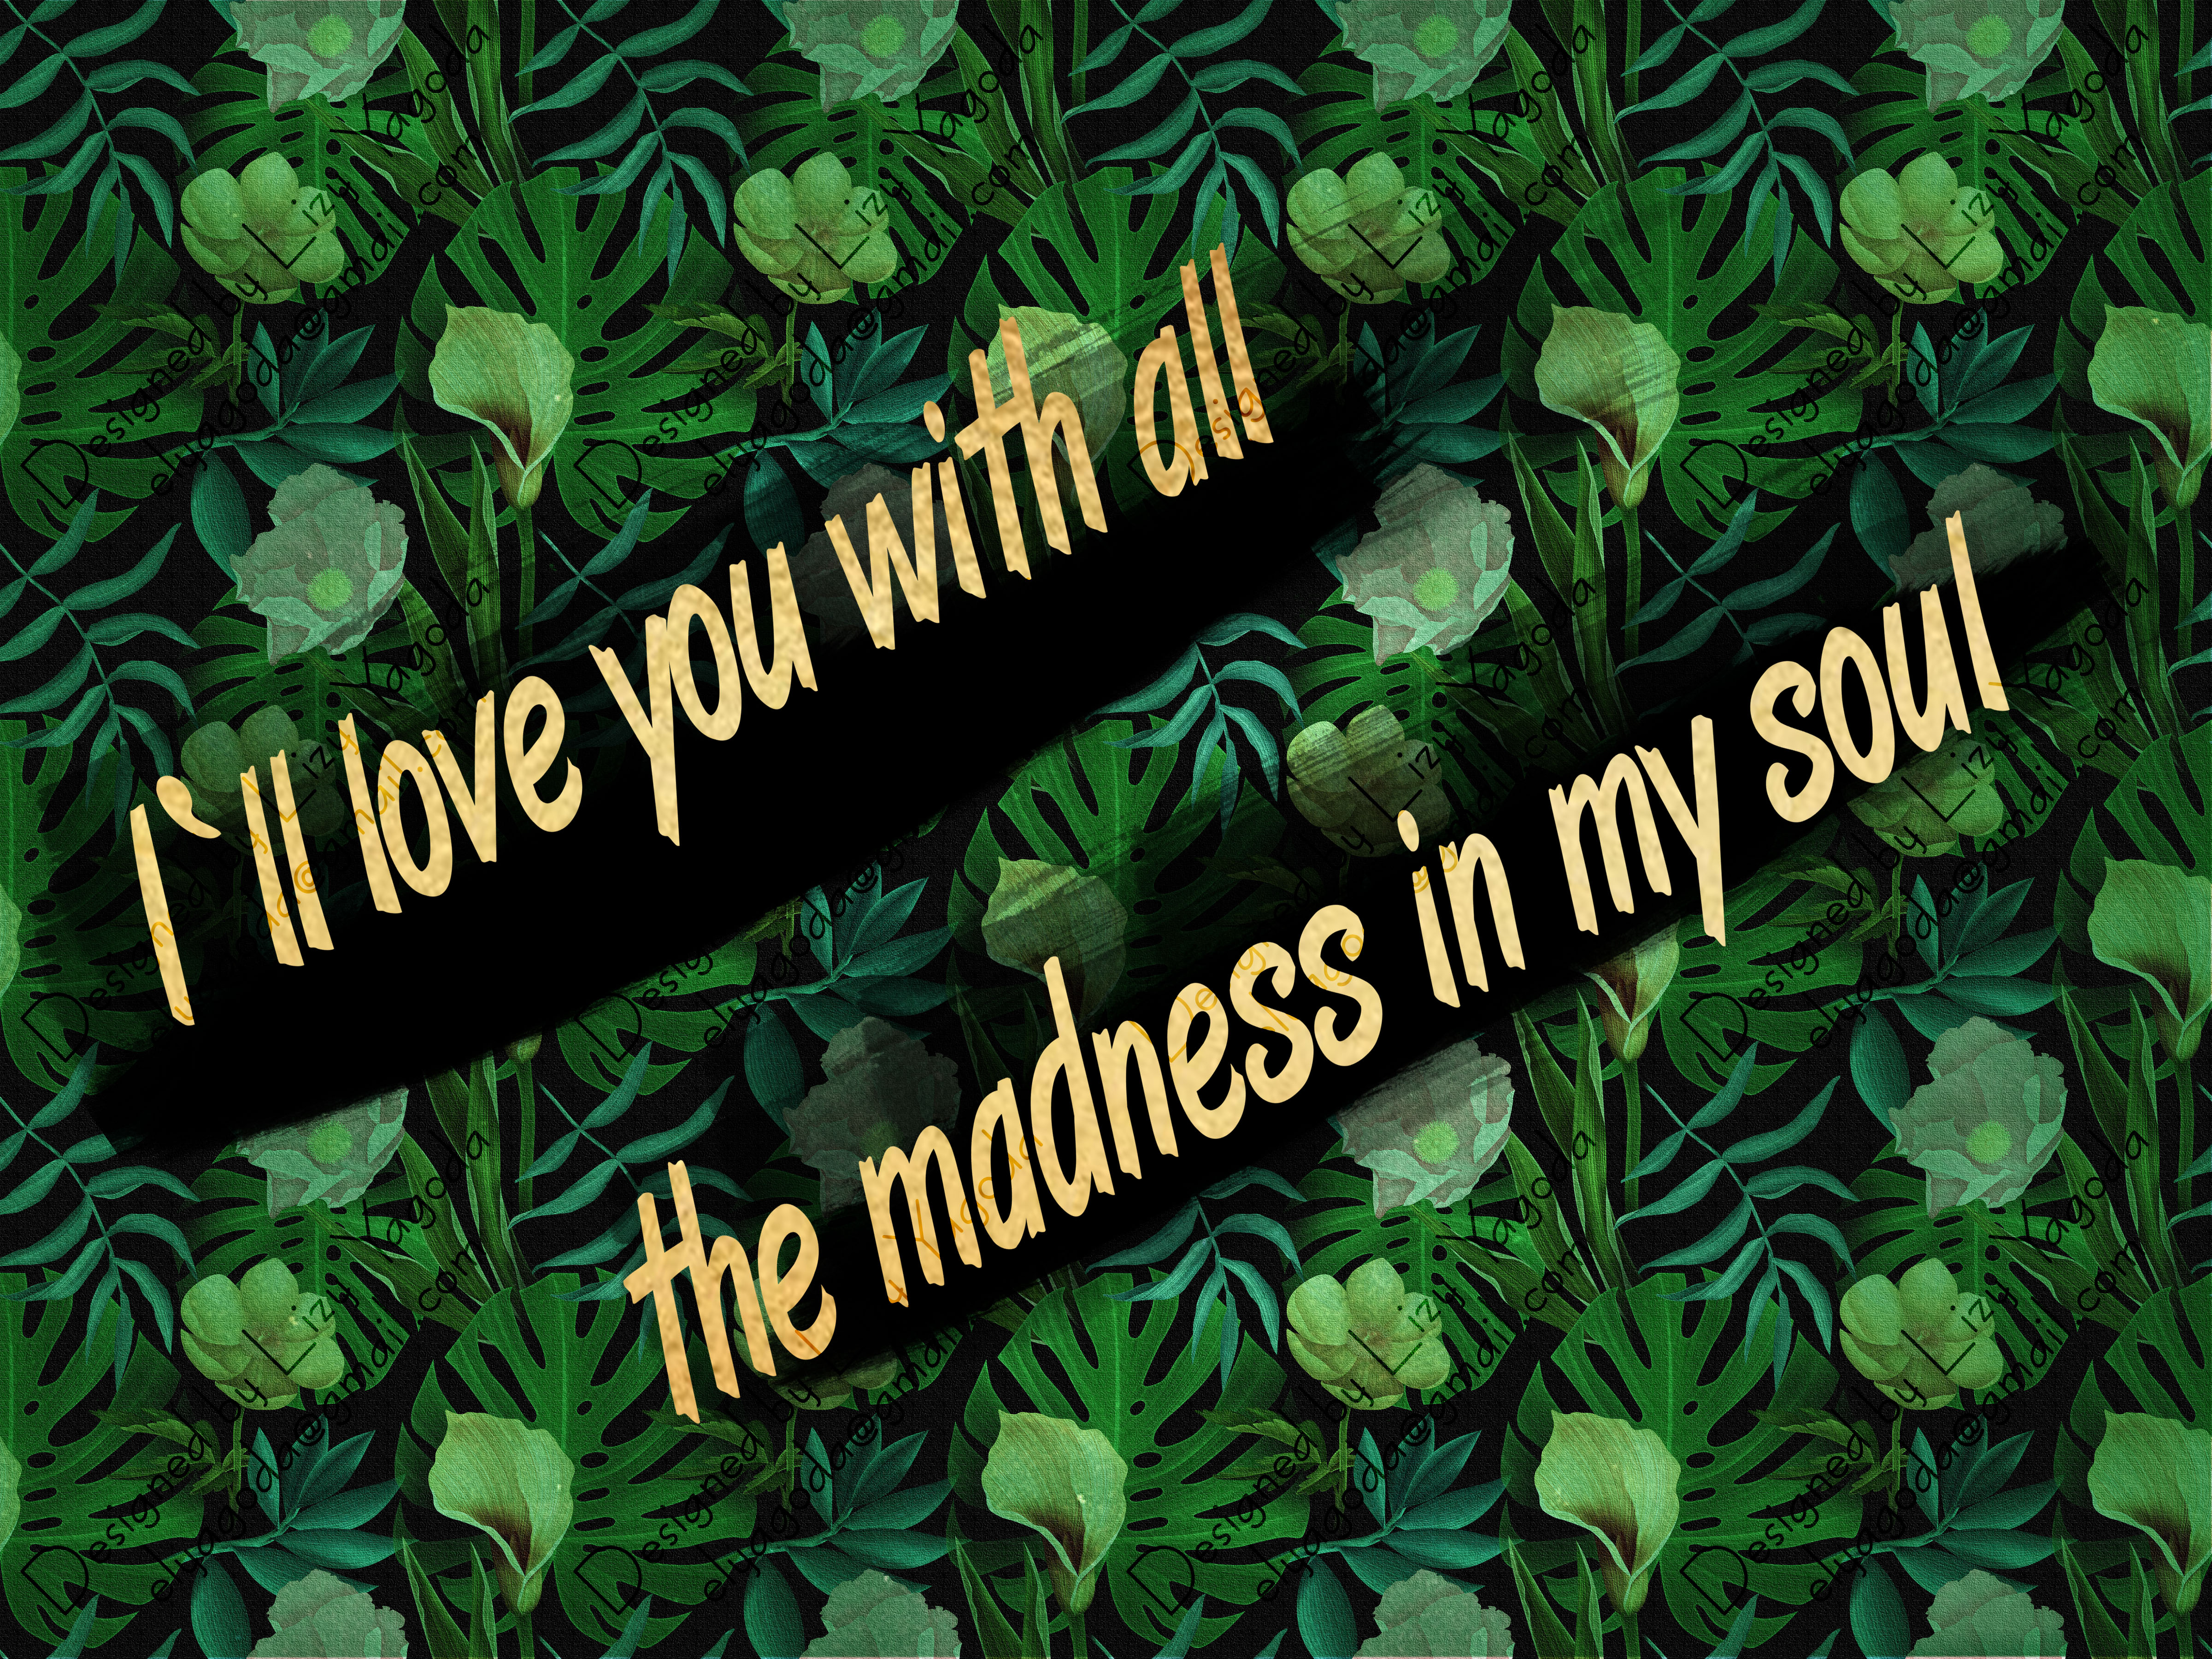 I'll love you with all the madness in my soul